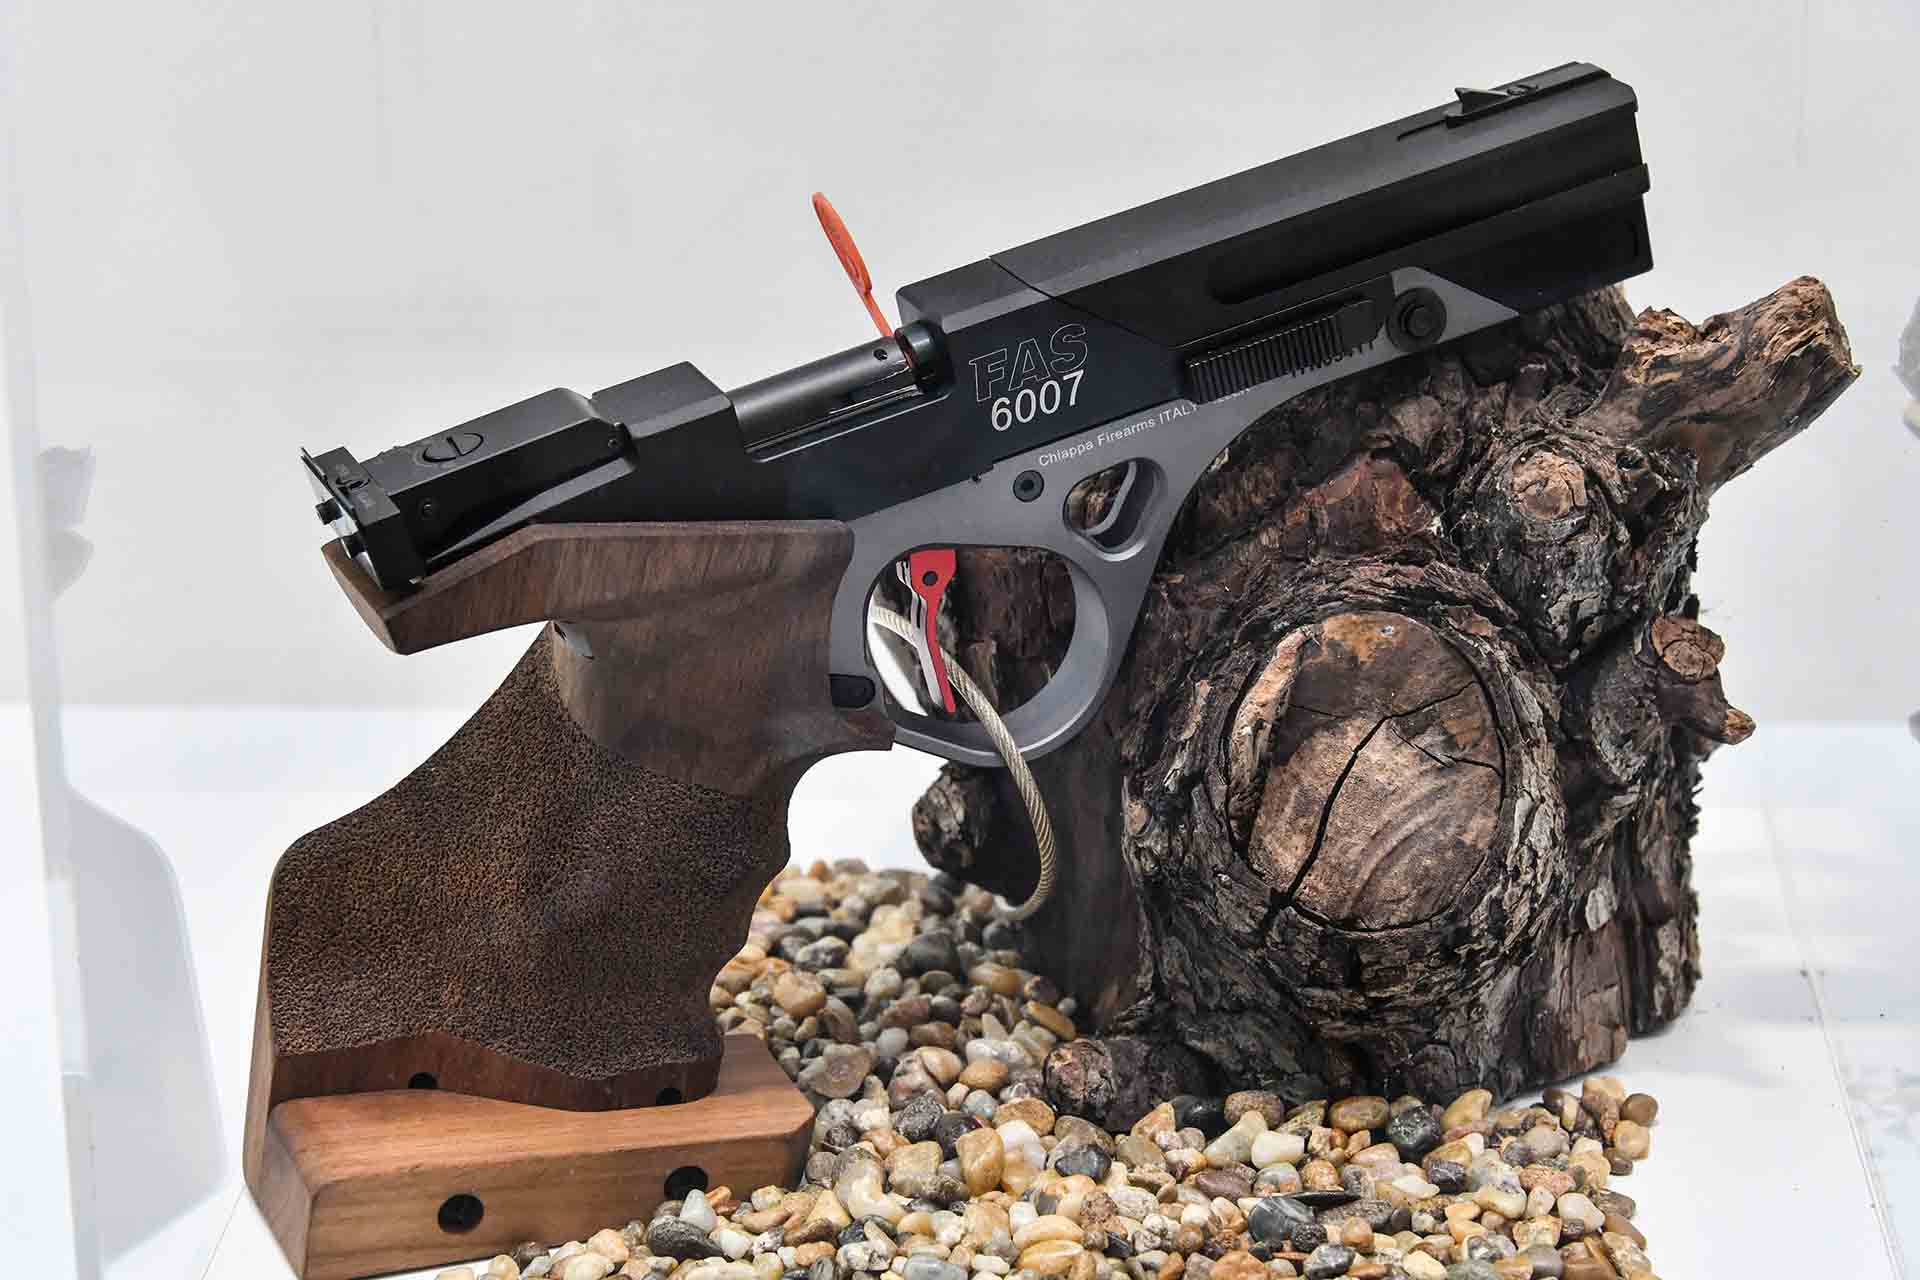 Chiappa Firearms FAS 6007 Standard Competition .22lr pistol at IWA 2018.